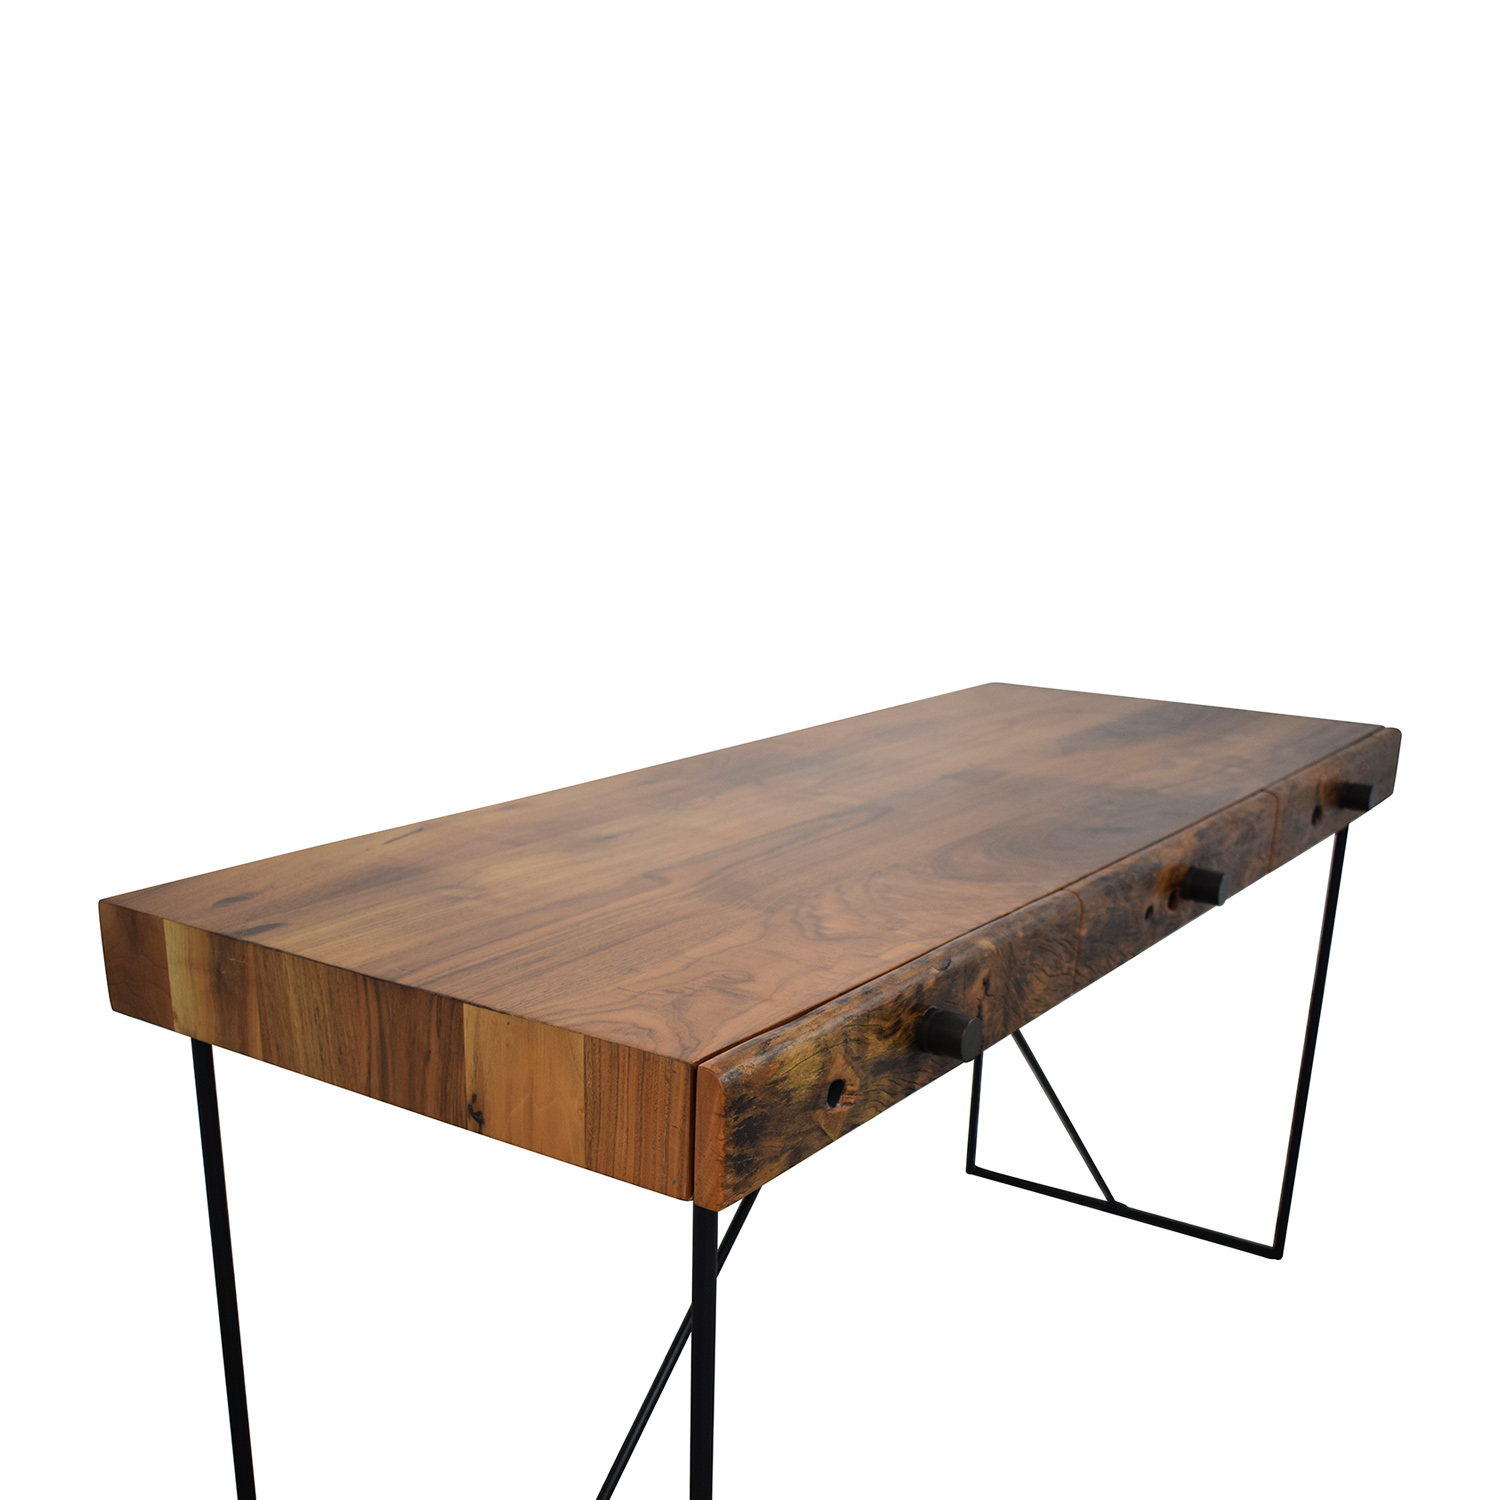 Four Hands Four Hands Wright Desk used